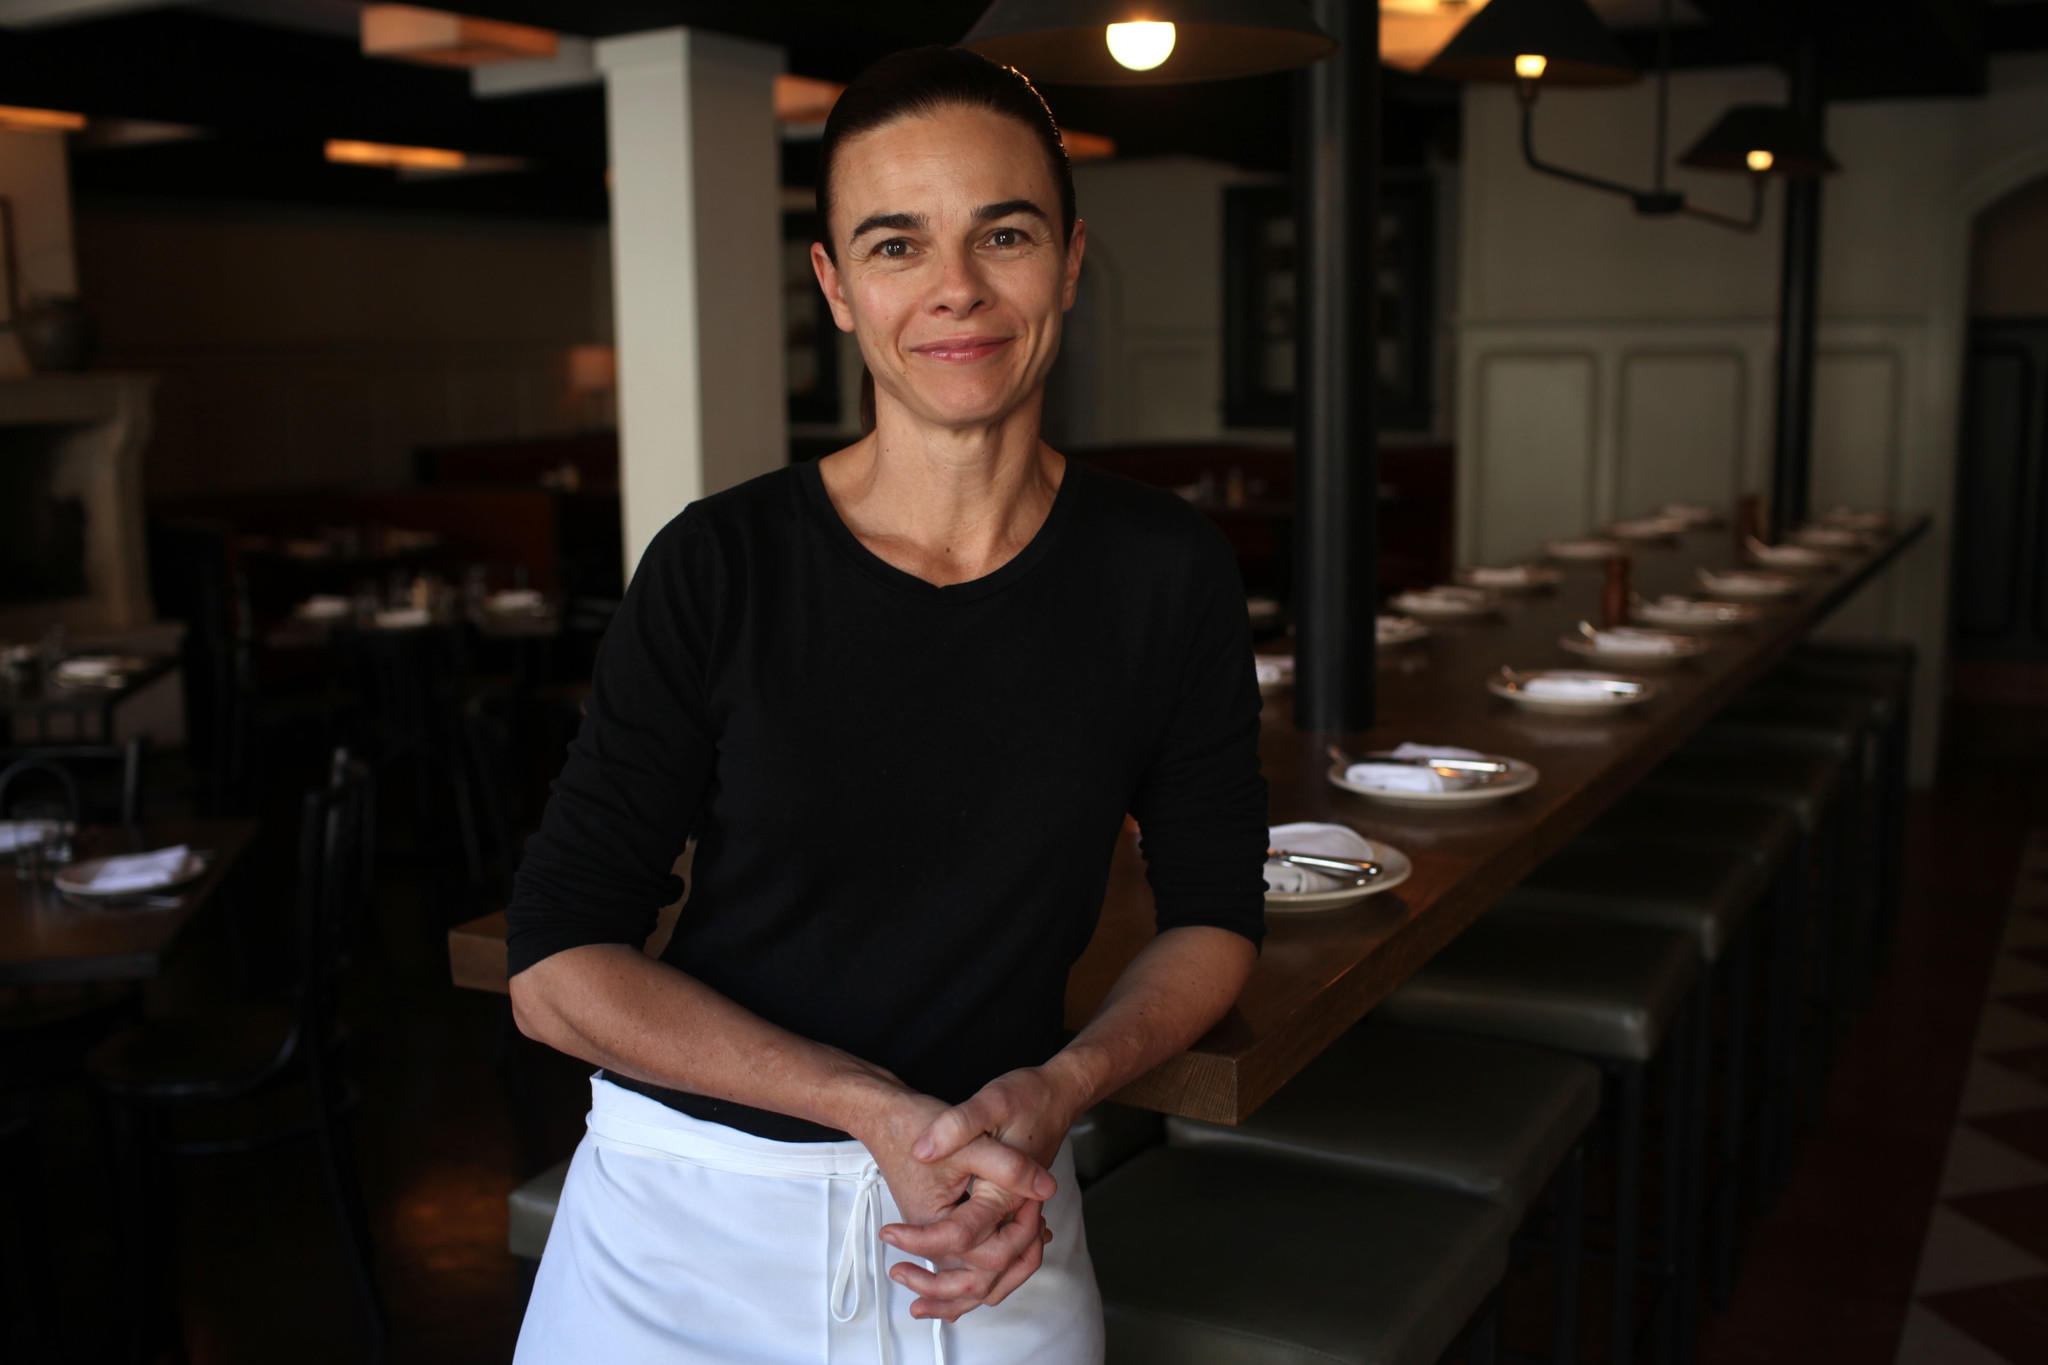 Chef Suzanne Goin is co-creator of Larder at Tavern, a growing restaurant brand that opened a site inside Los Angeles International Airport.